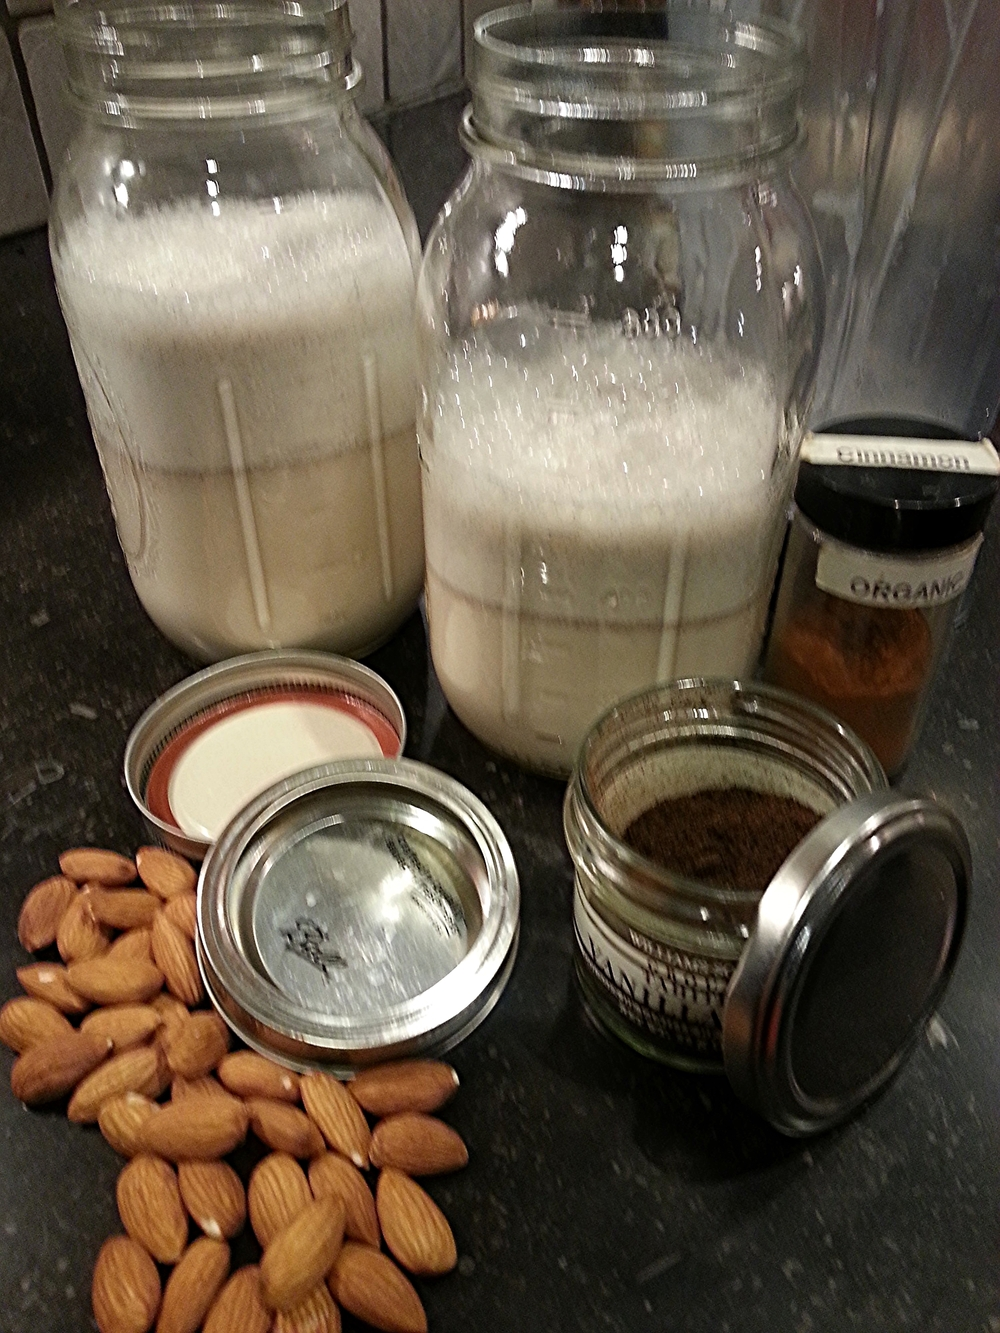 The results of taking a few simple ingredients, spending a short amount of time in the kitchen - homemade nut milk. Keep it in an airtight container, pop it in the fridge and enjoy for the next few days.